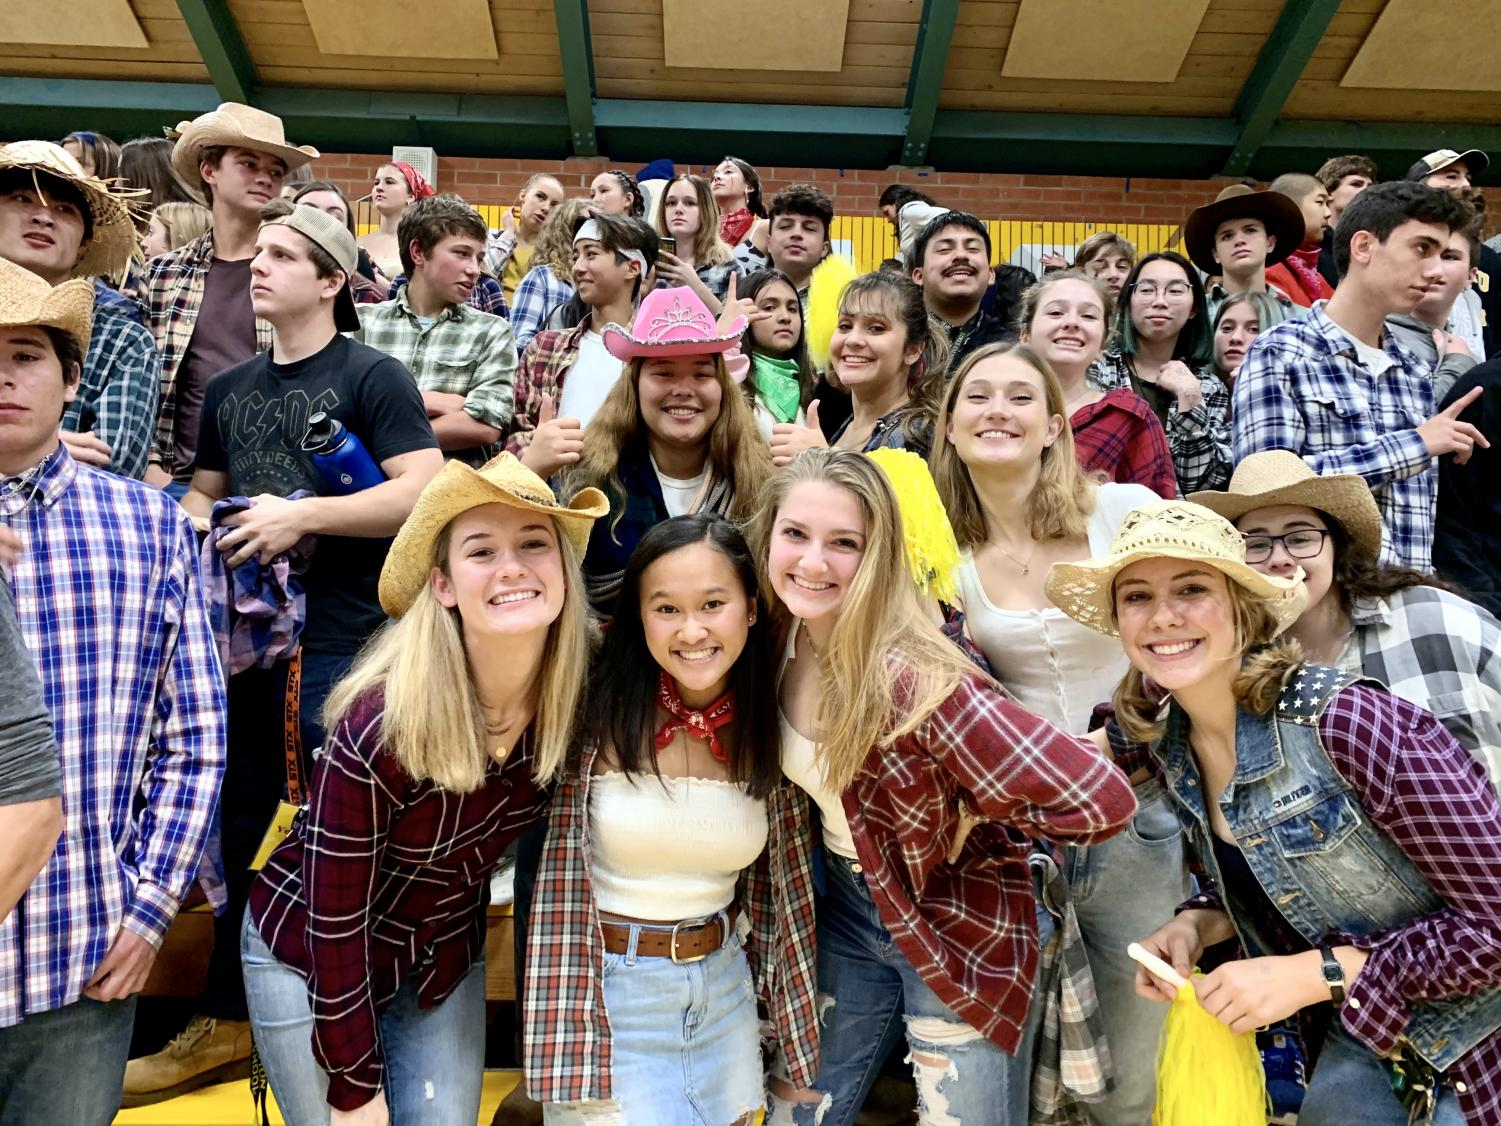 The Novato crowd at the game dressed up for the wild west theme